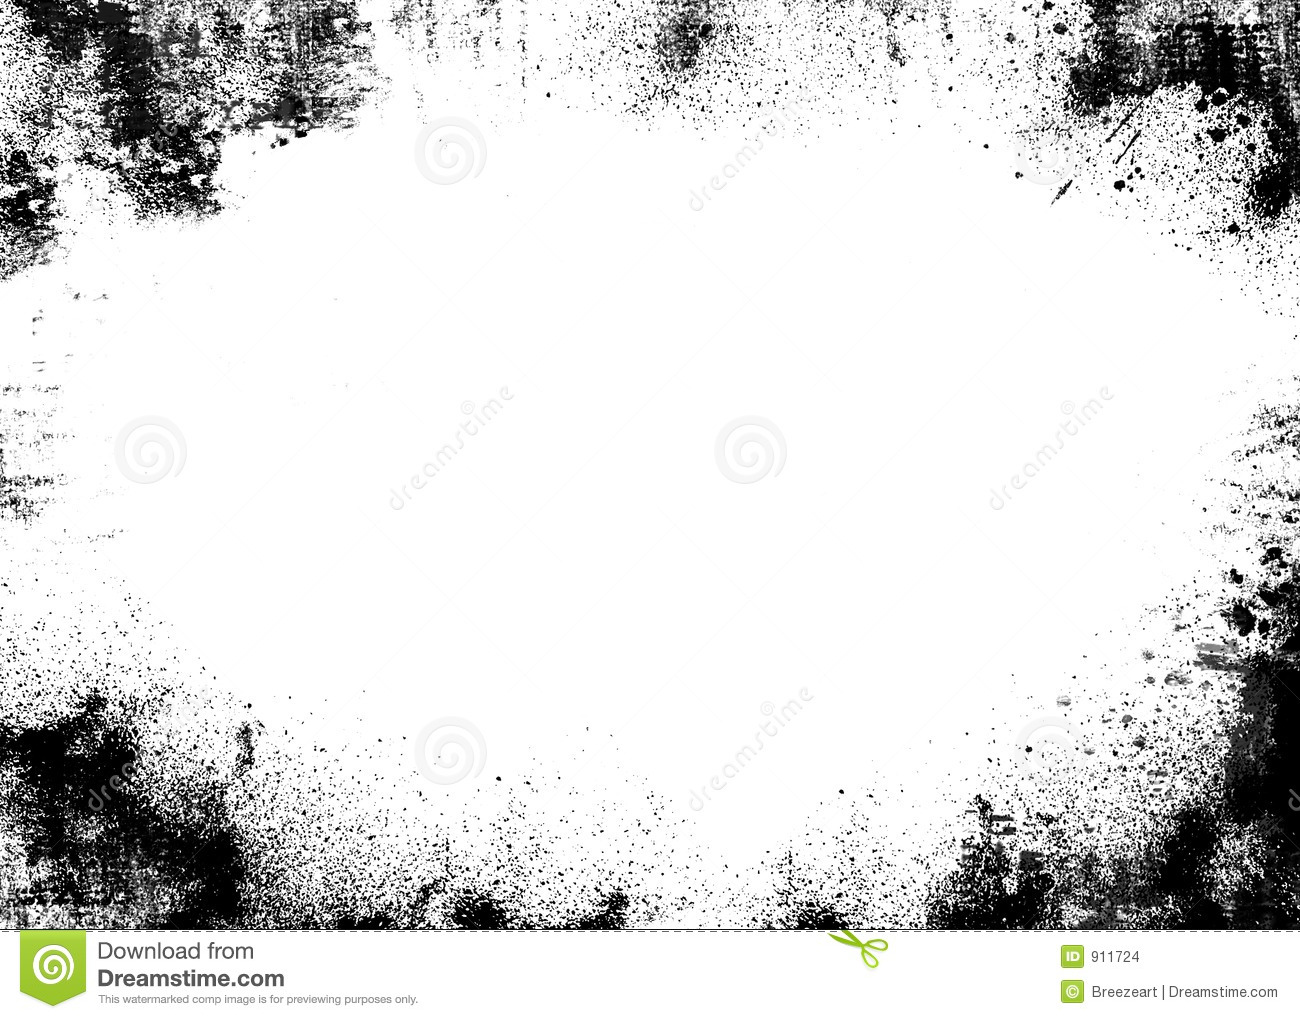 Royalty Free Stock Photography Funnel Vector Illustration Image6109787 in addition Stock Illustration Celtic National Drawing Zoomorphic Figure Animal Dog Head Open Mouth Bared Fangs Image85304484 together with Stock Photos Official St  Image10620413 likewise Stock Images Black Border Grunge Image911724 as well Bakerloo. on seats